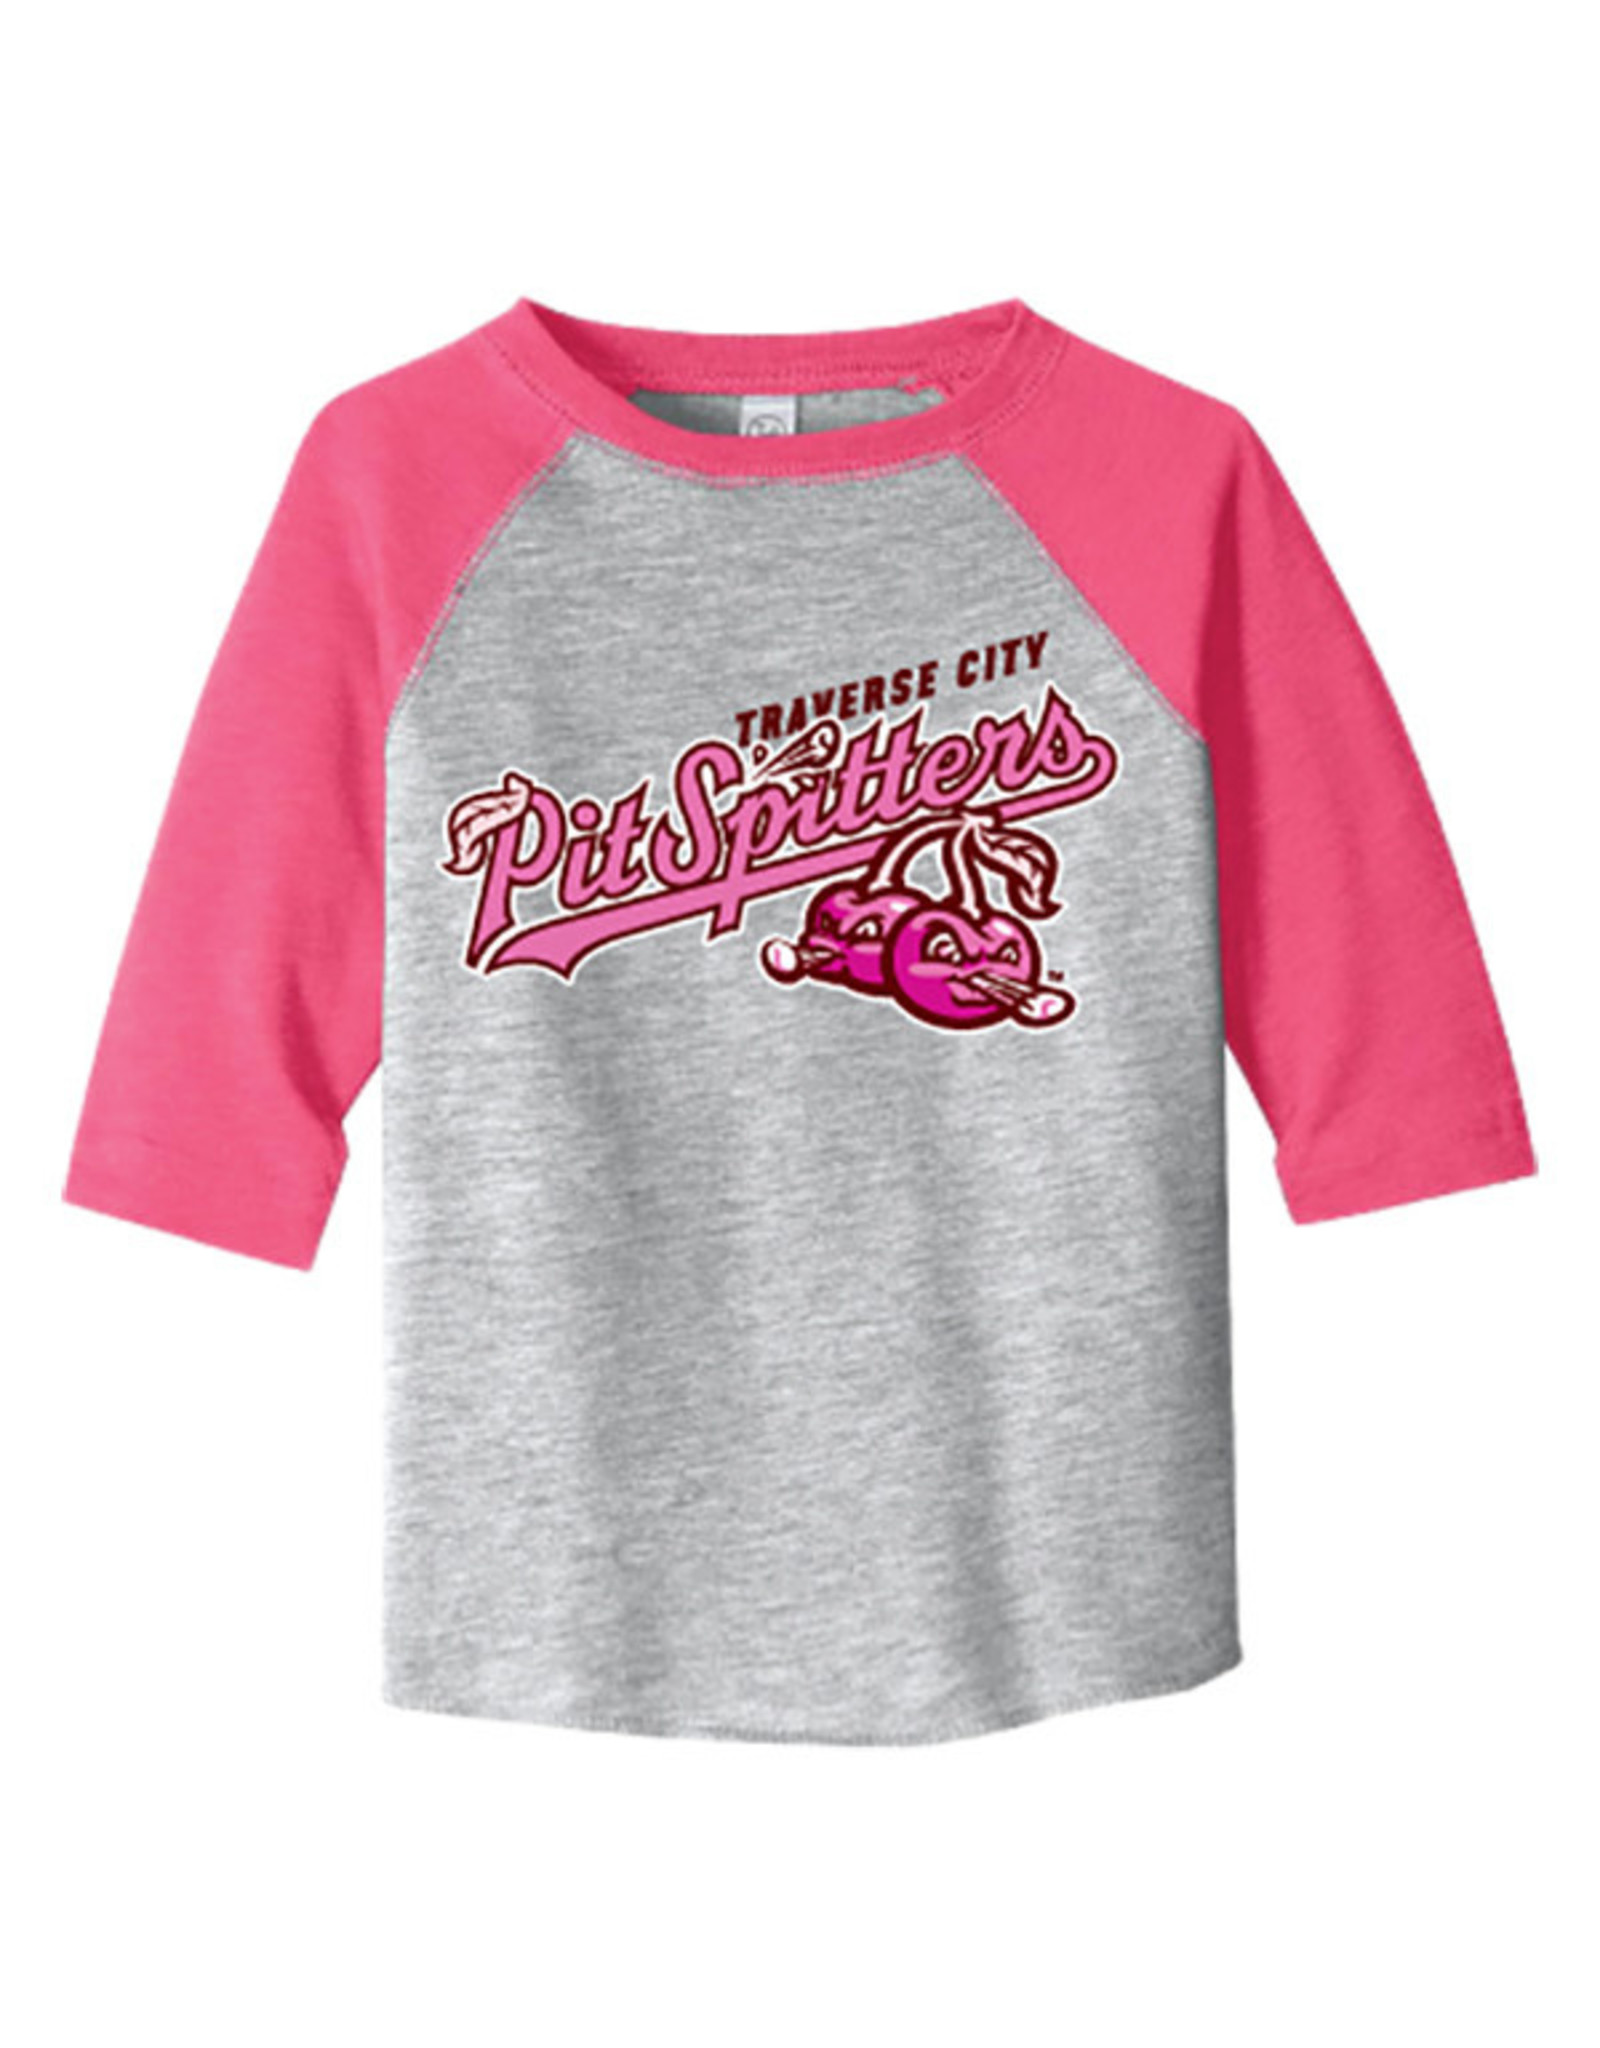 Rabbit Skins 2931 Toddler 3/4 Sleeve Heather/Pink Tee